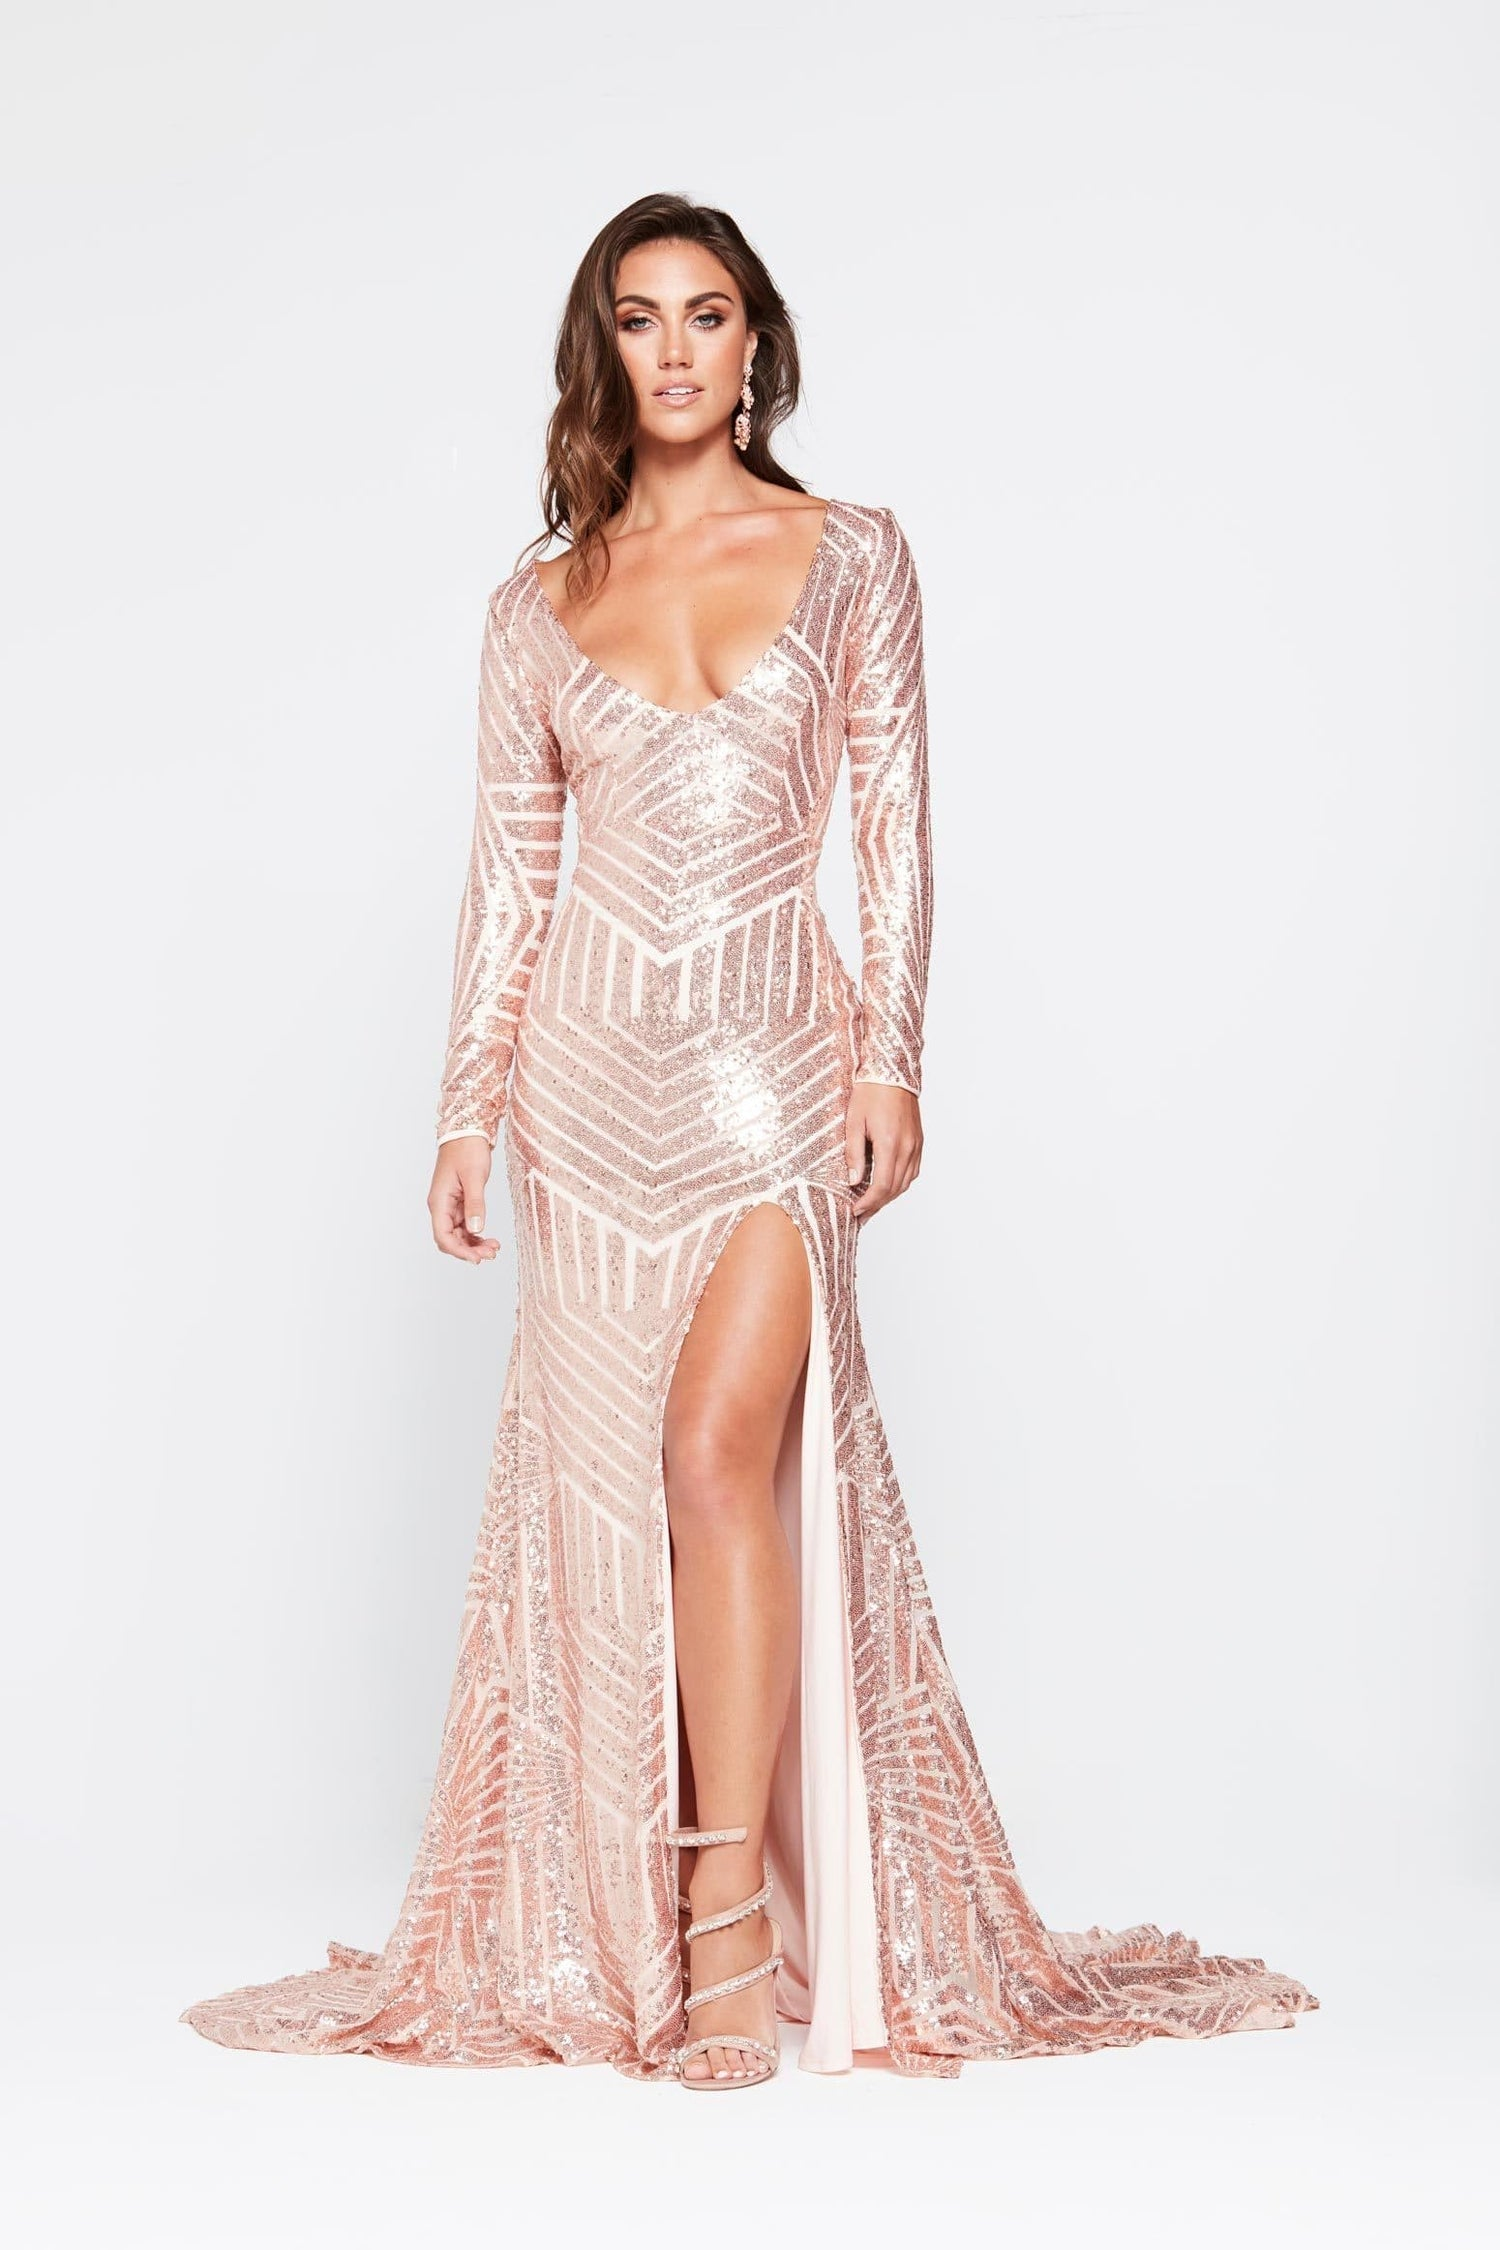 e579be3d255c ... A&N Kaya- Rose Gold Sequin Dress with Long Sleeve and Side Slit ...